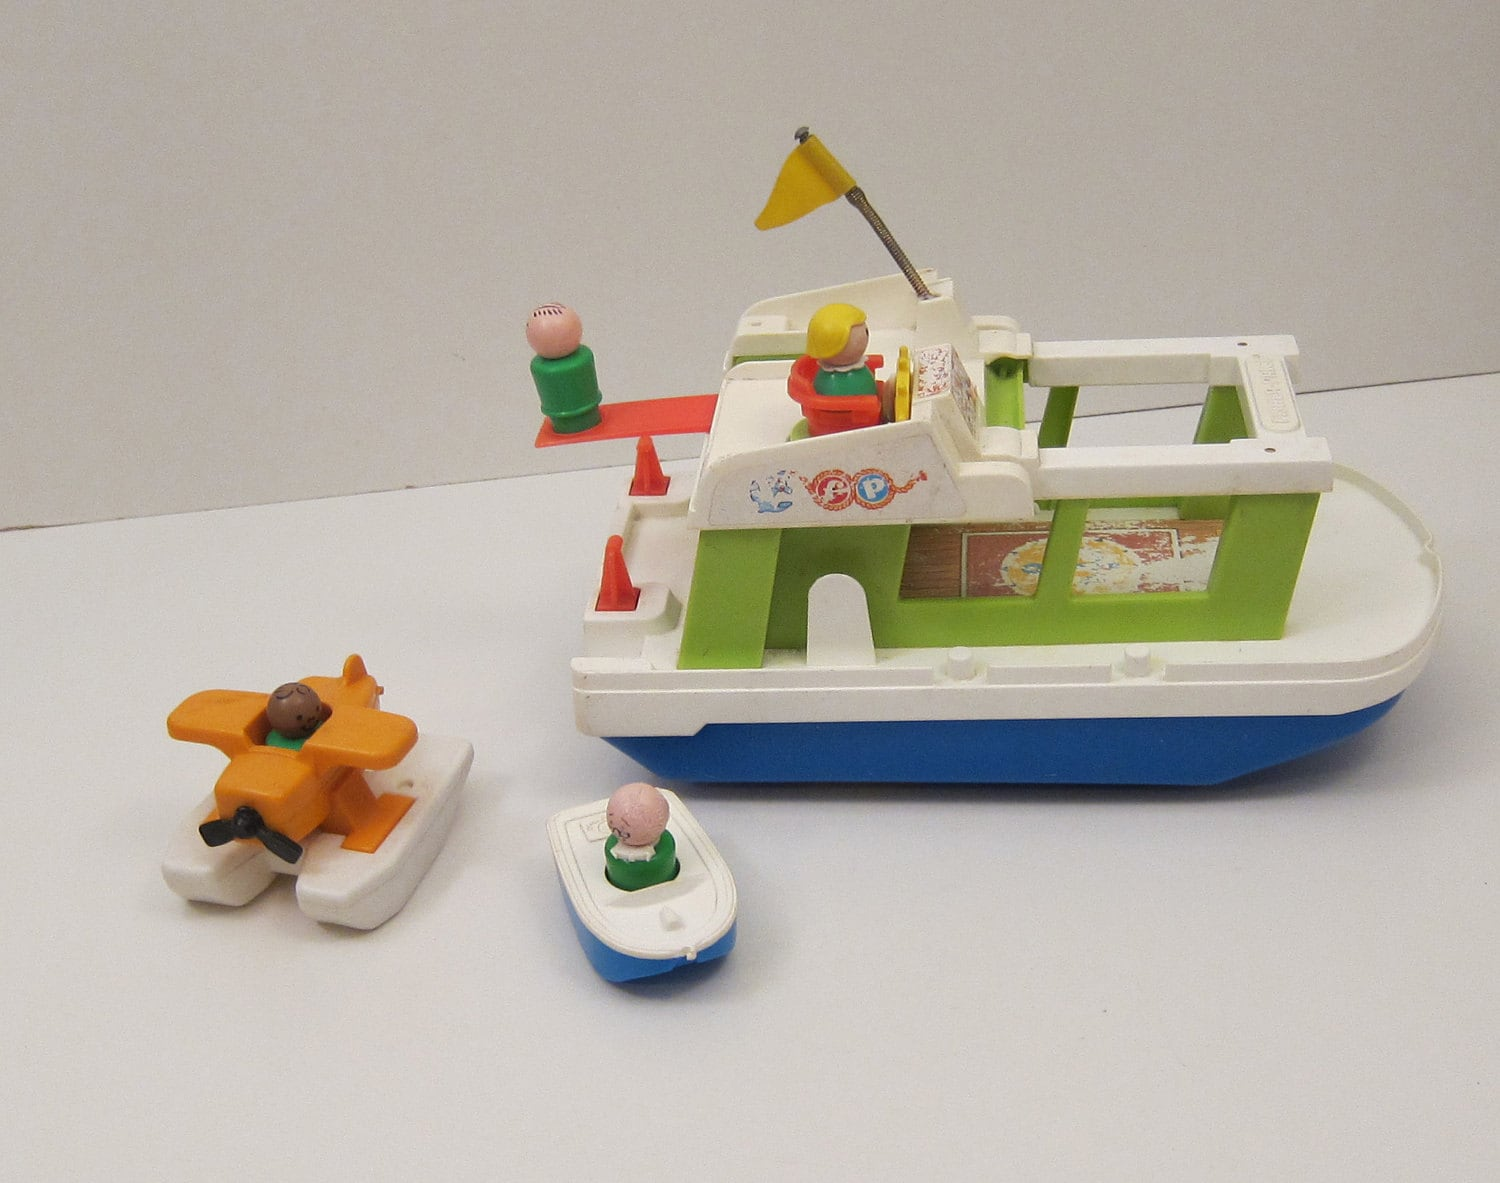 Old Toys From The 70s : Fisher price happy houseboat with little people by thepantages